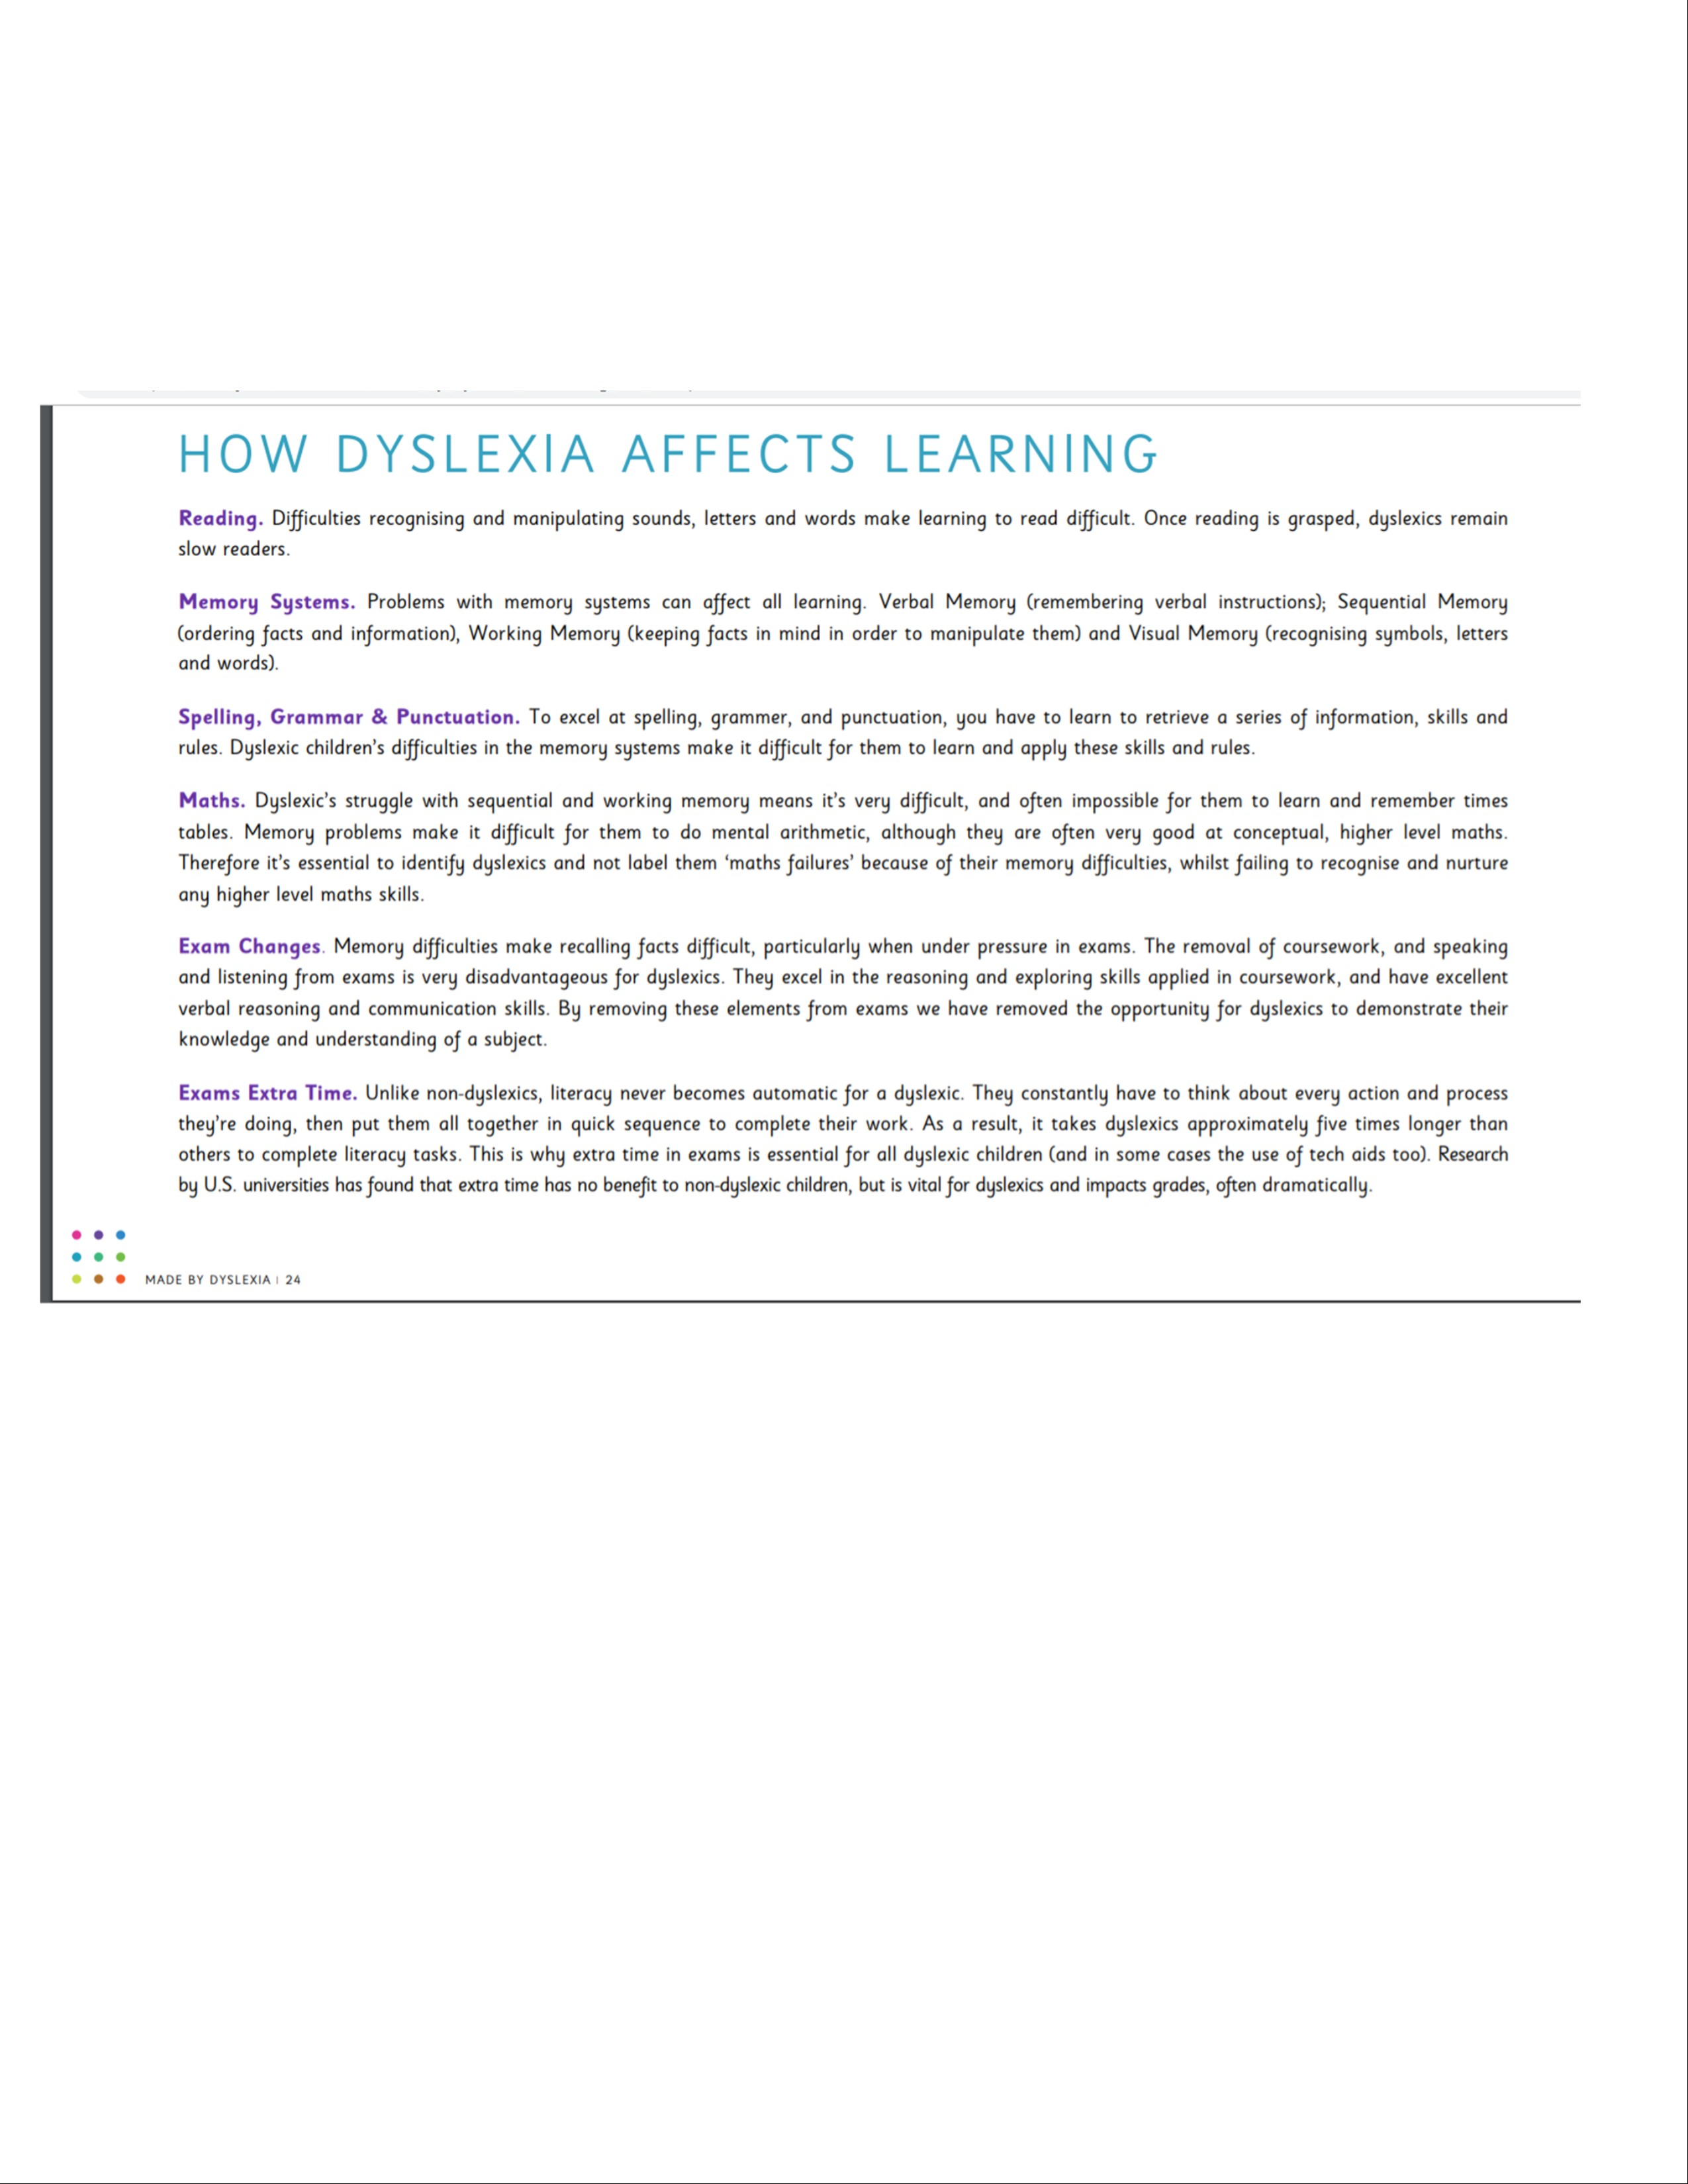 Dyslexia and Learning in NJ